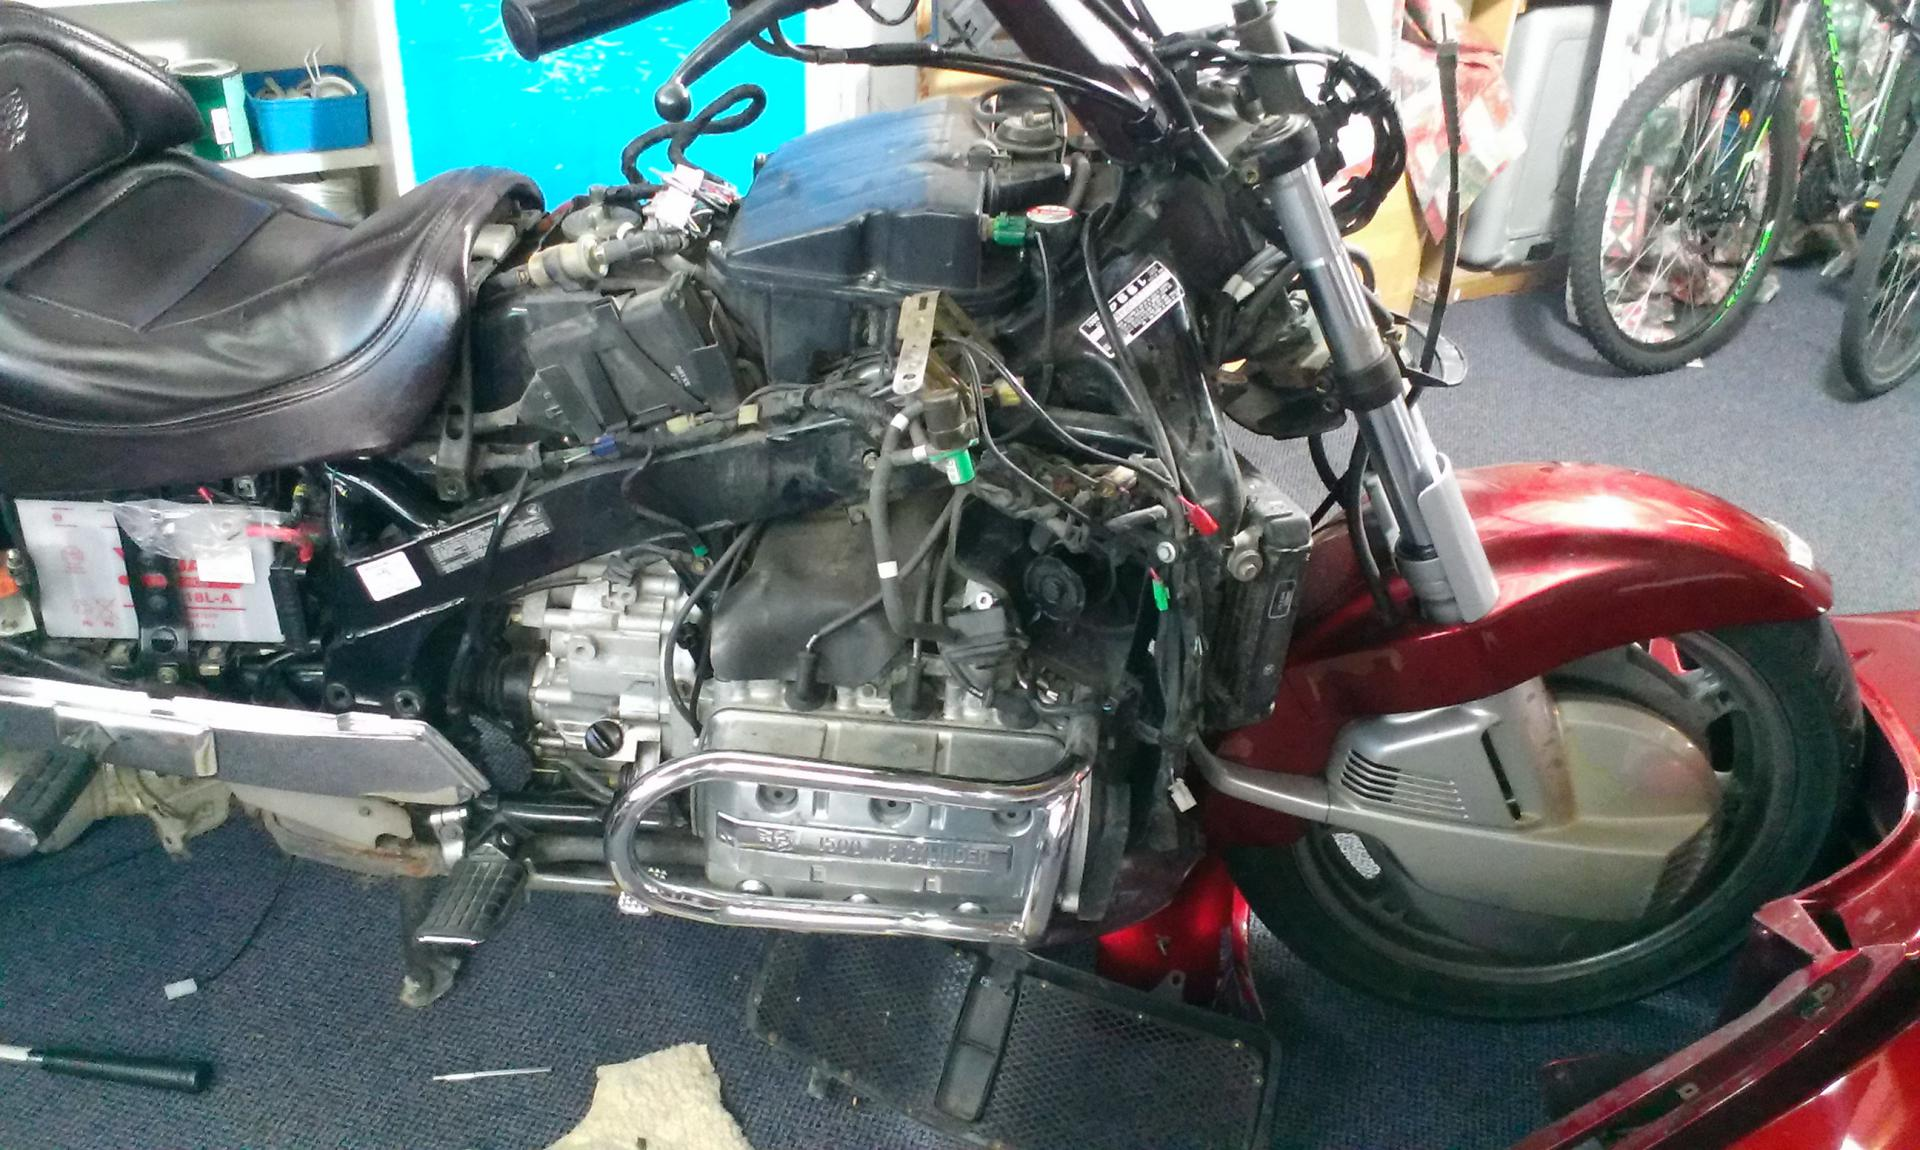 Help needed, do I replace the GL1500 timing belts? - Steve